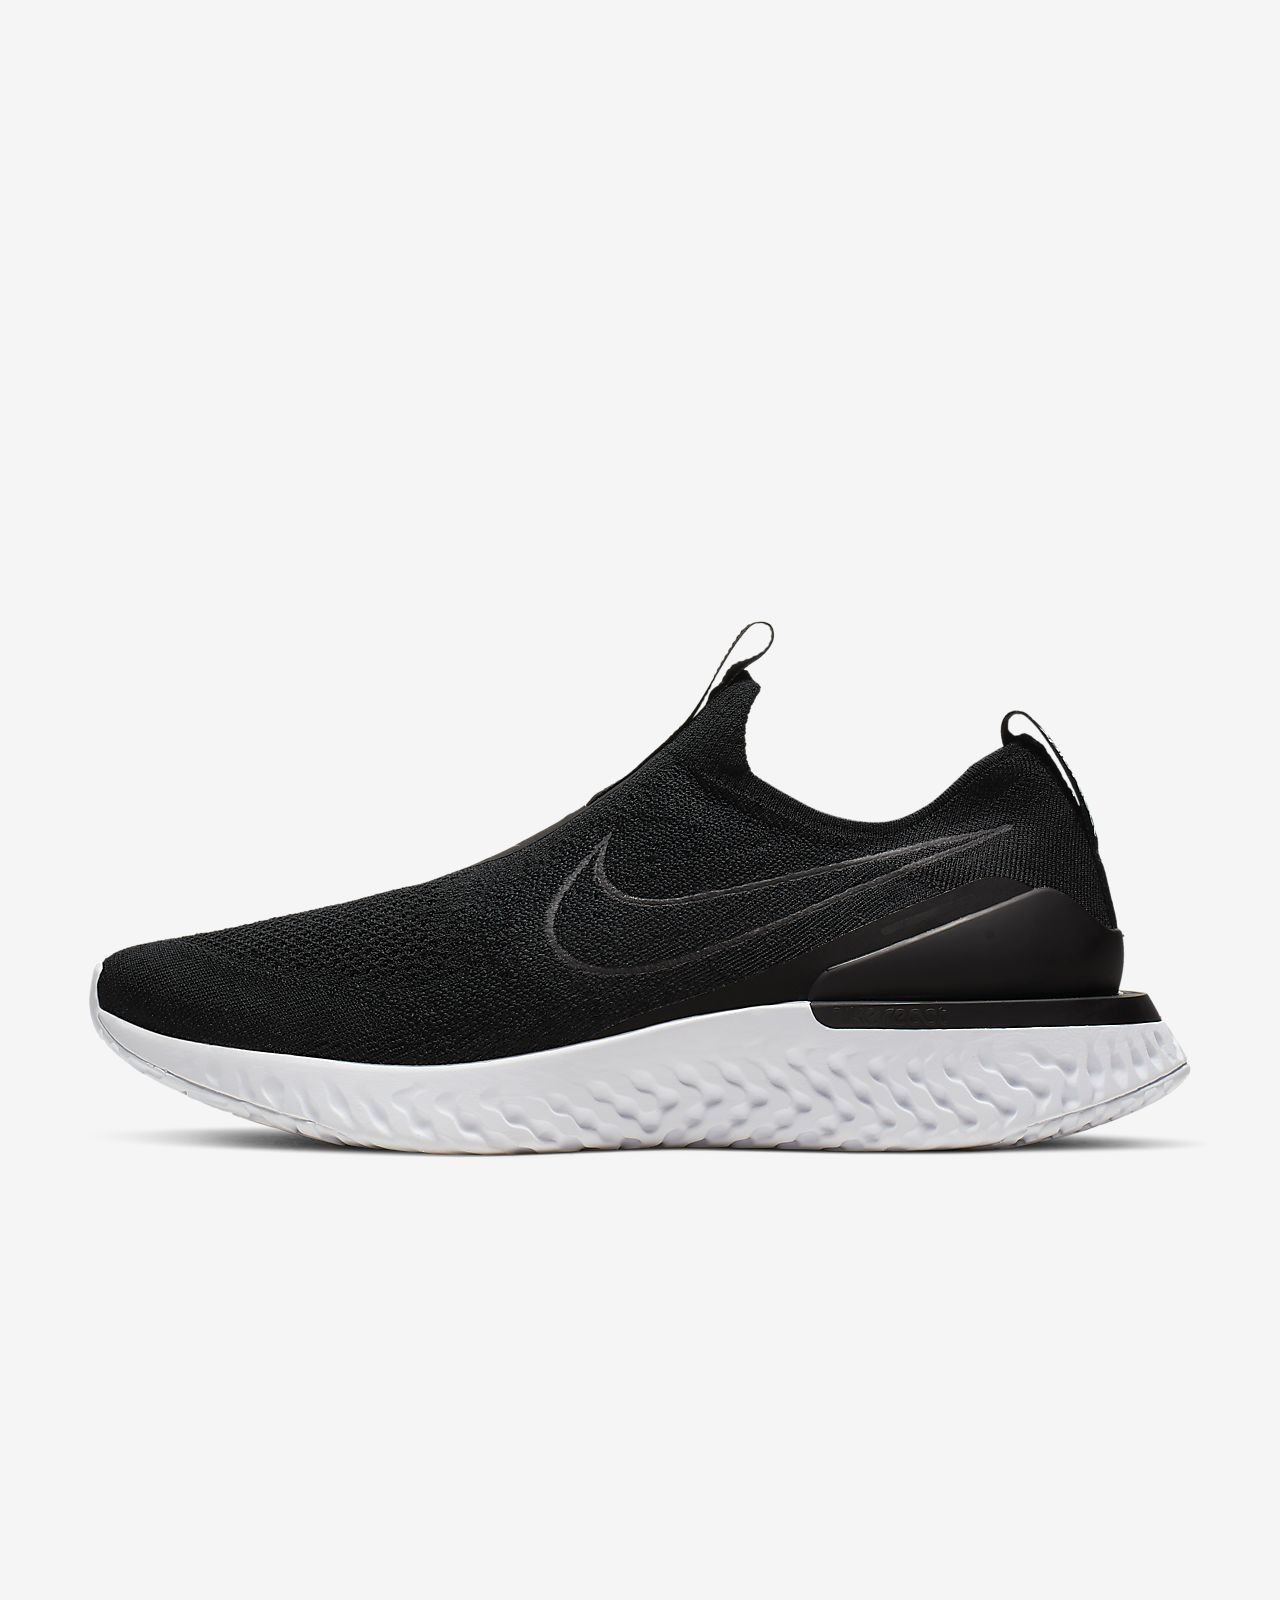 new product 392a3 8d270 Nike Epic Phantom React Flyknit Men's Running Shoe